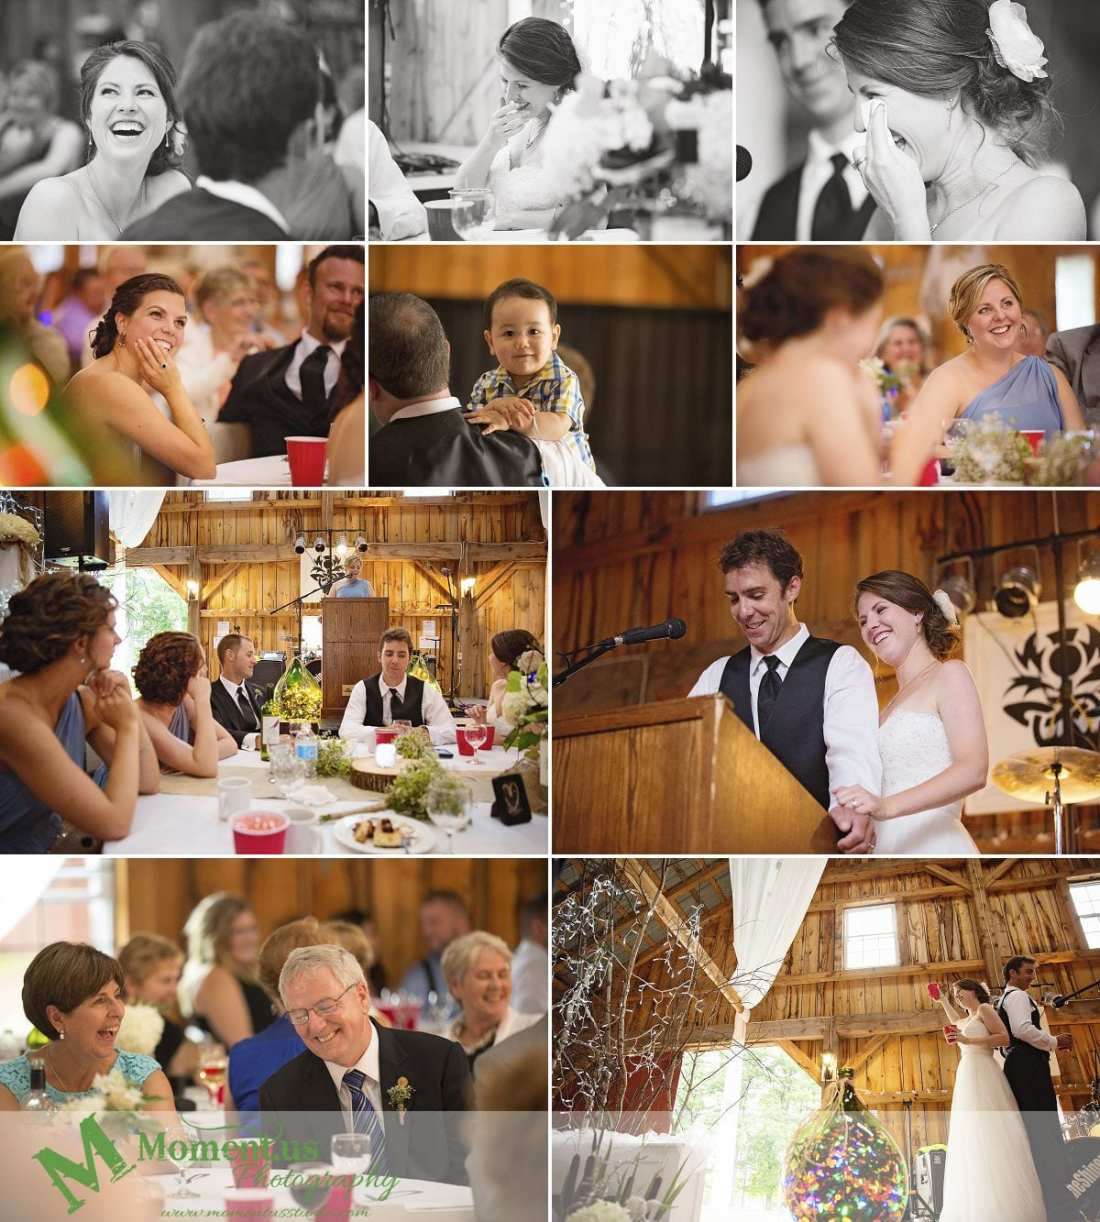 Williamstown Country Wedding - laughing during speeches